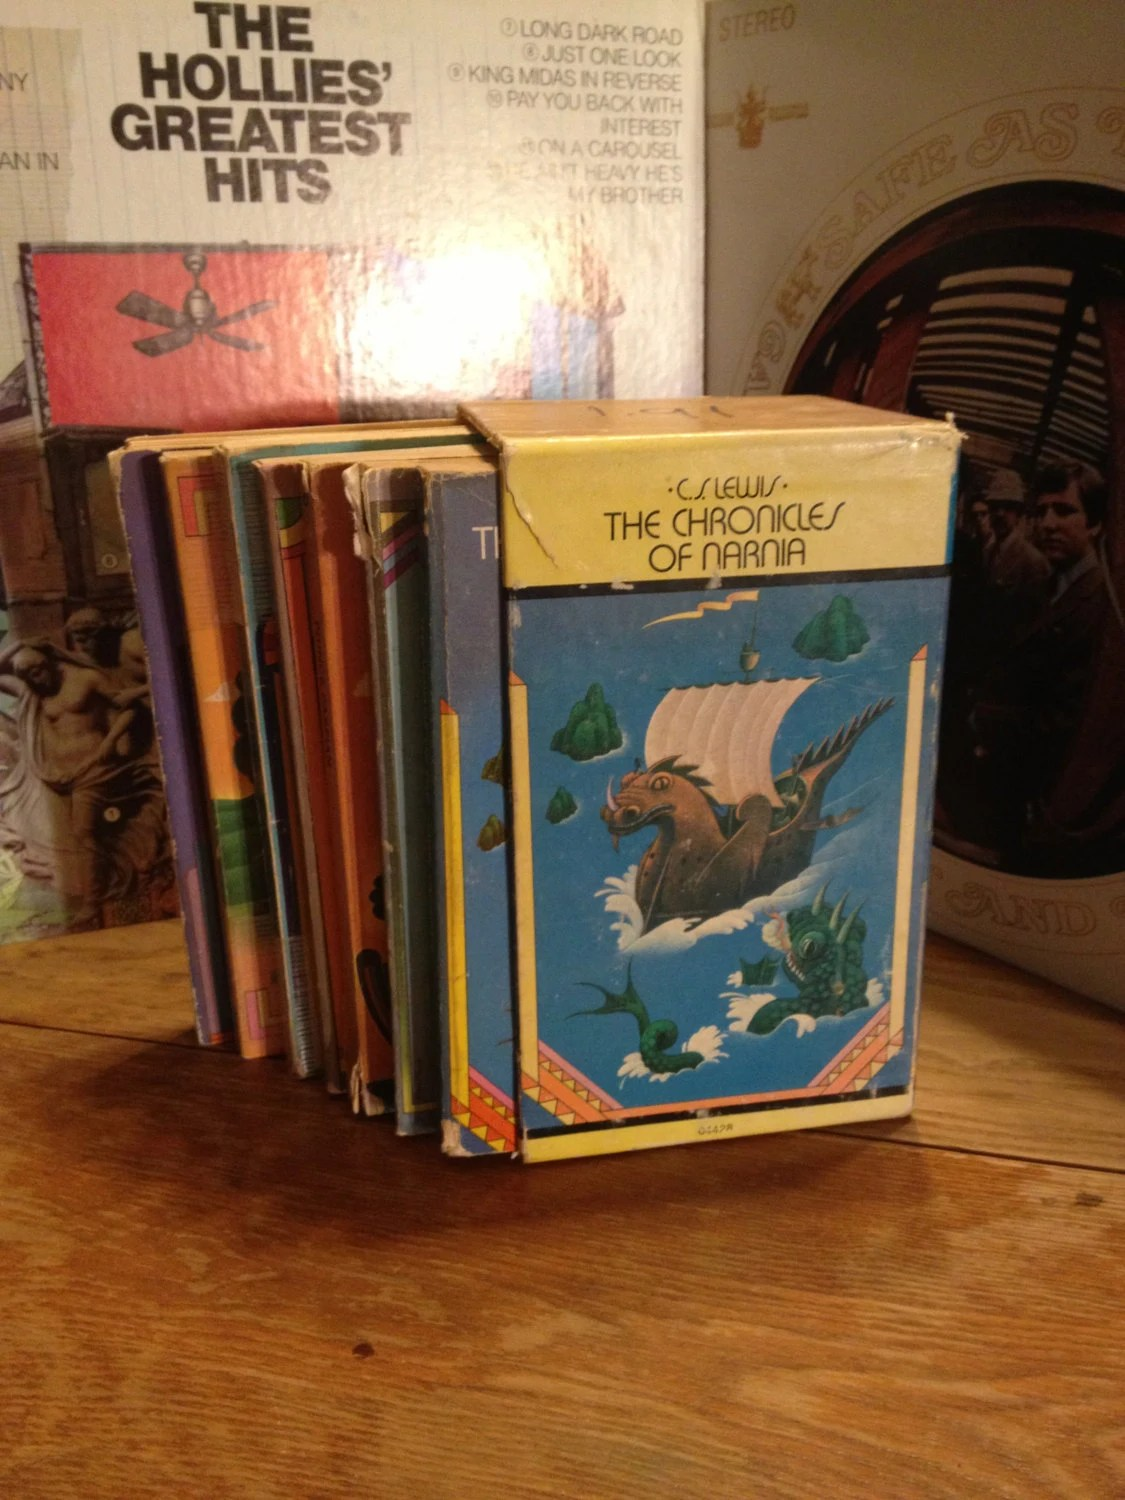 1970 Edition The Chronicles of Narnia Box Set by CS Lewis